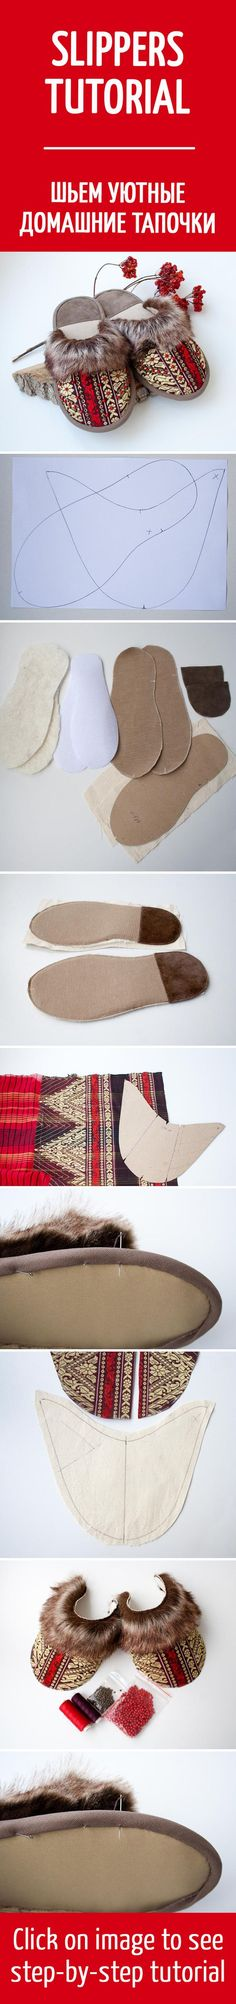 How to sew slippers, tutorial  Шьем уютные домашние тапочки «Сударушка»